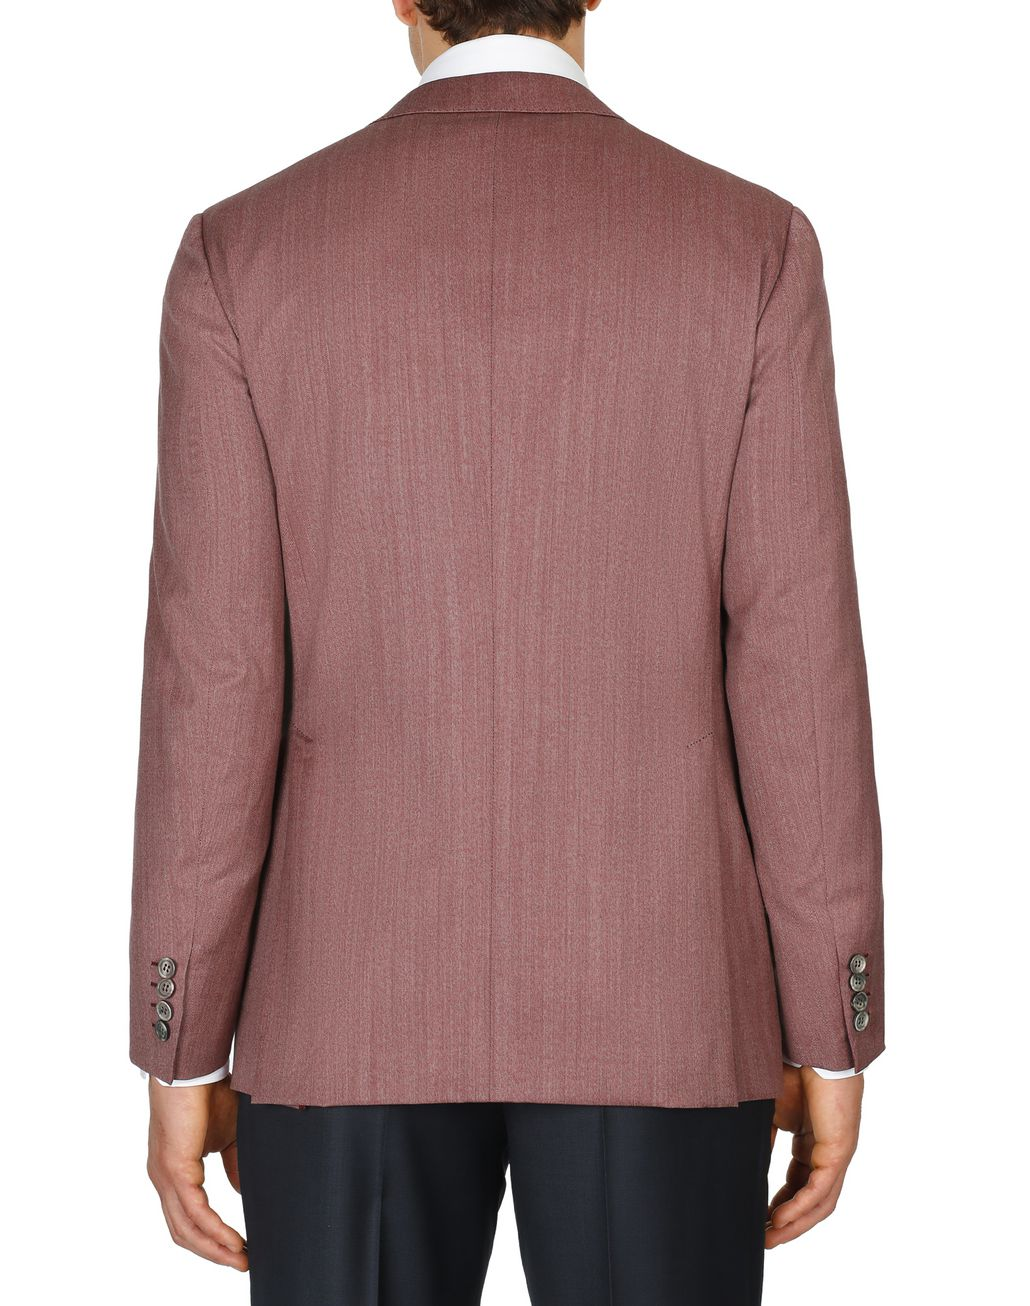 BRIONI Veste Plume à chevrons bordeaux Suits & Jackets Homme d